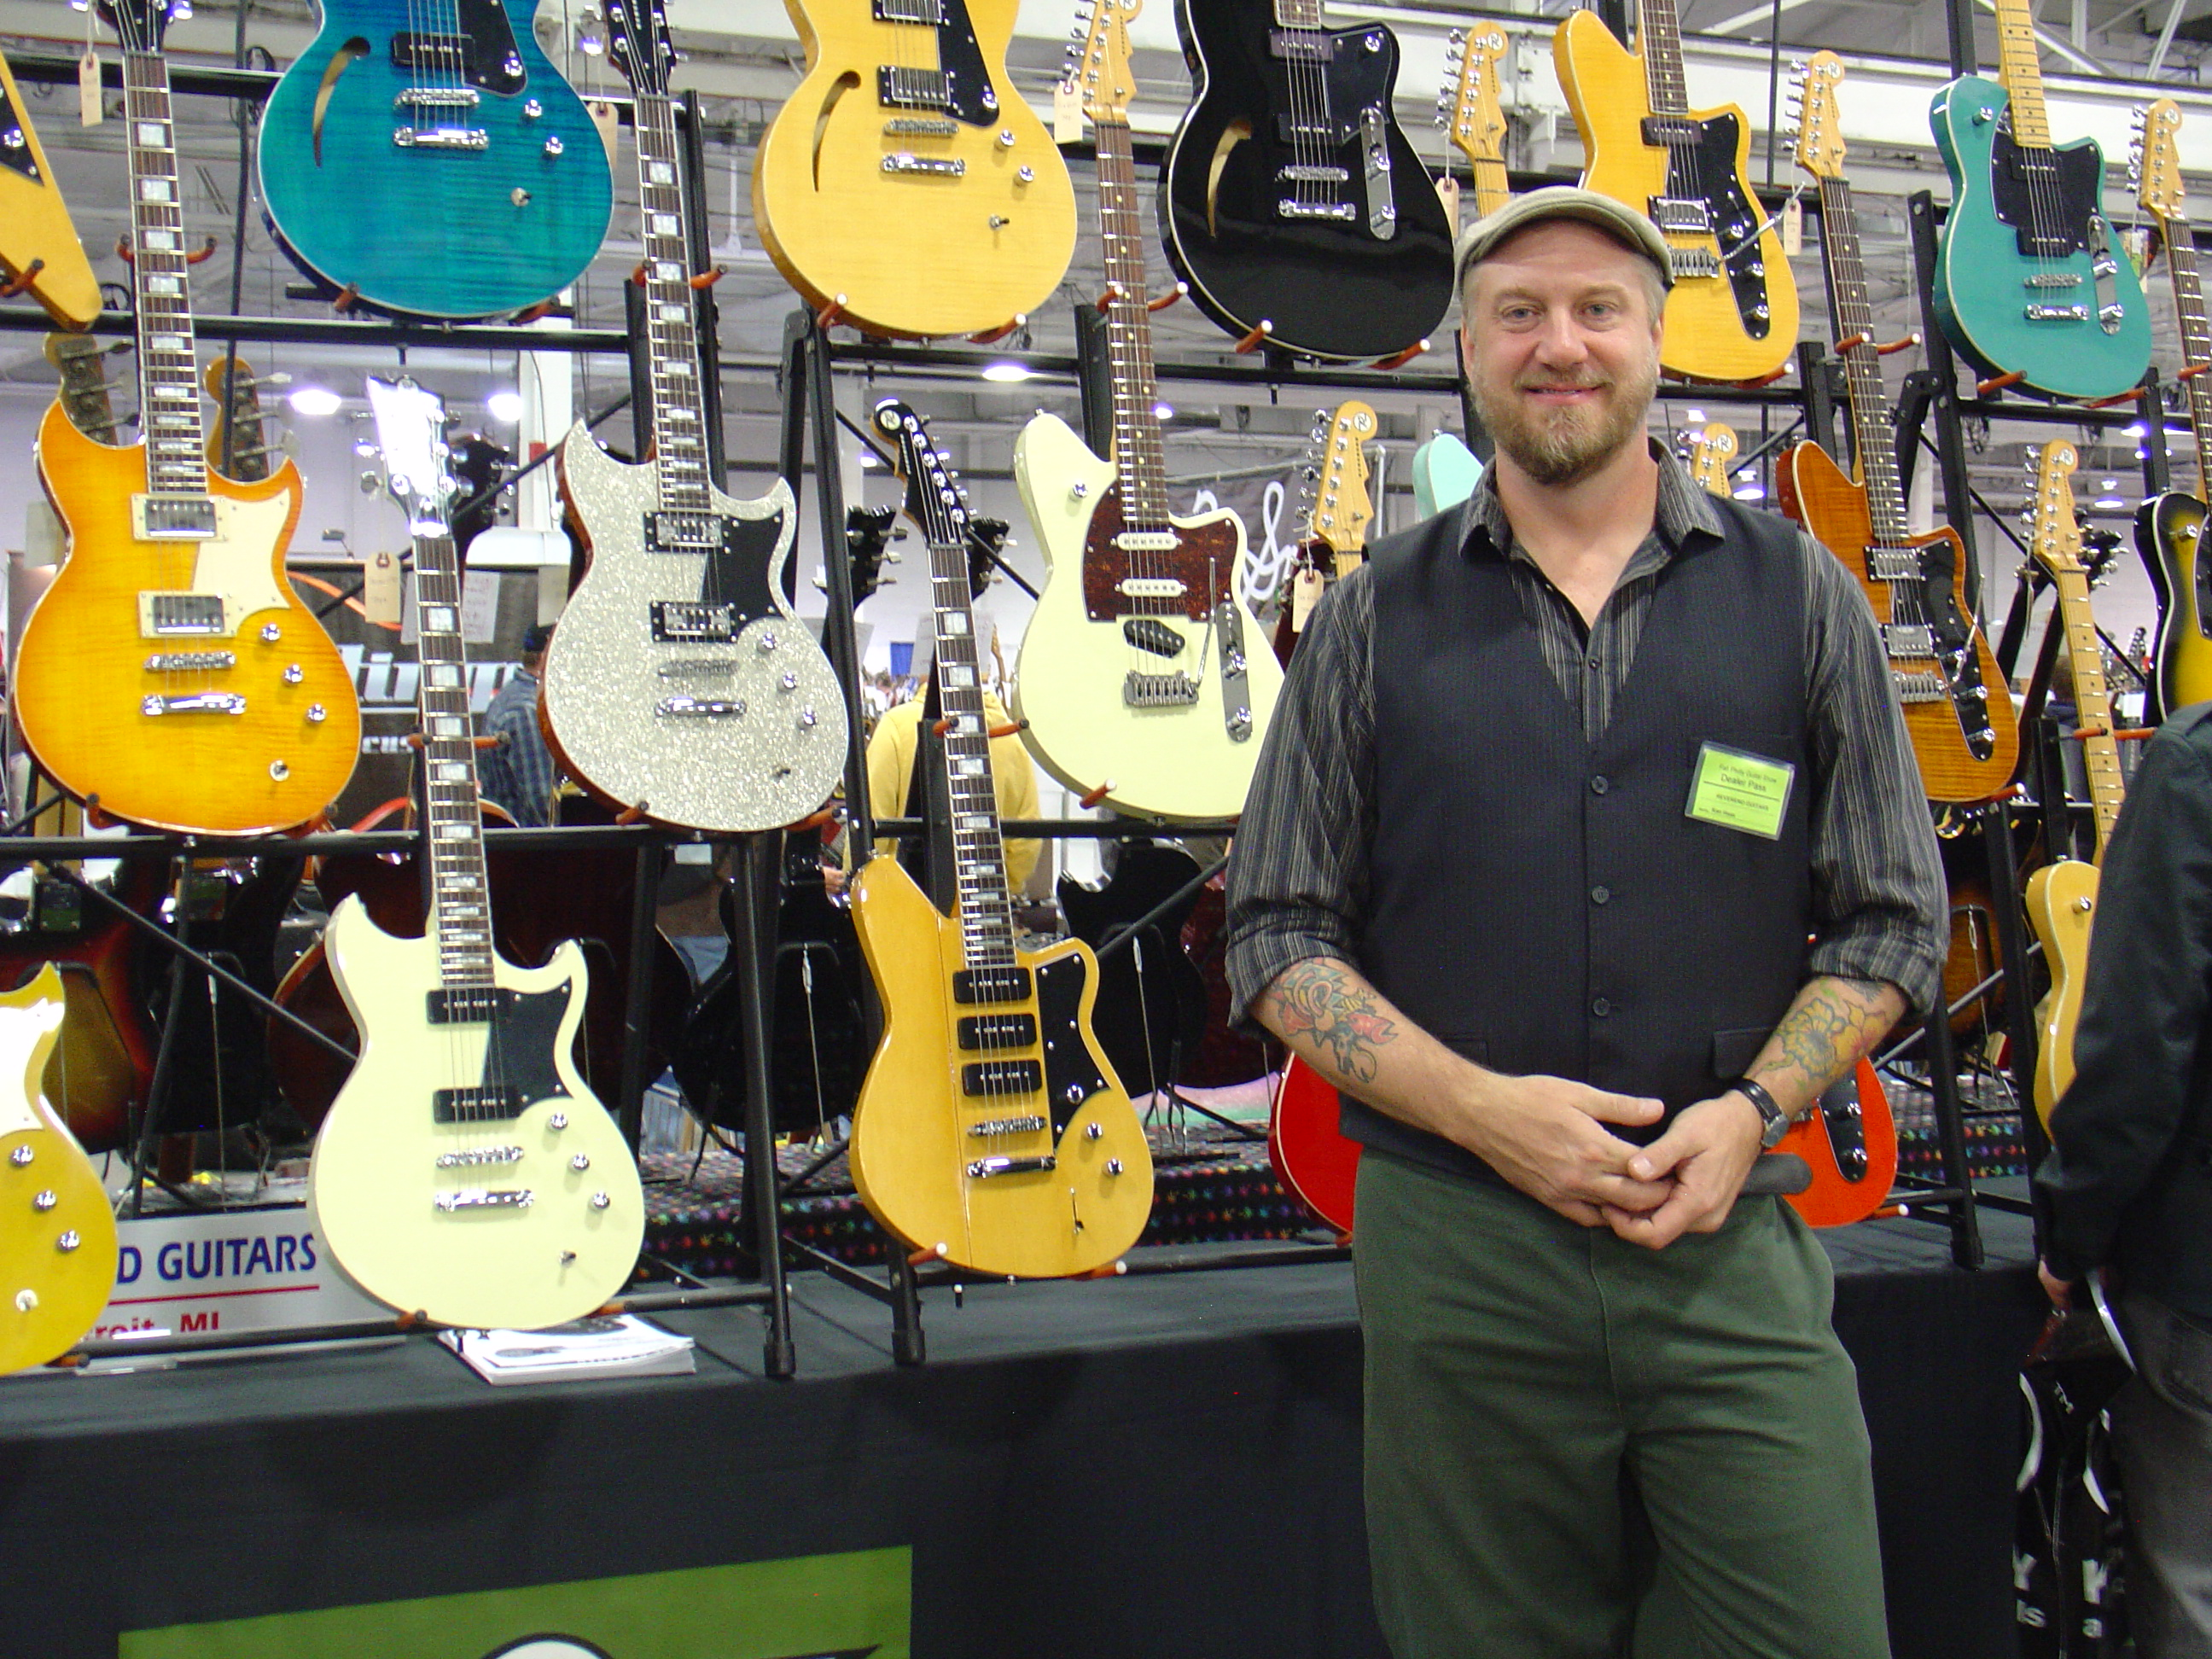 Ken Haas, Reverend Guitars